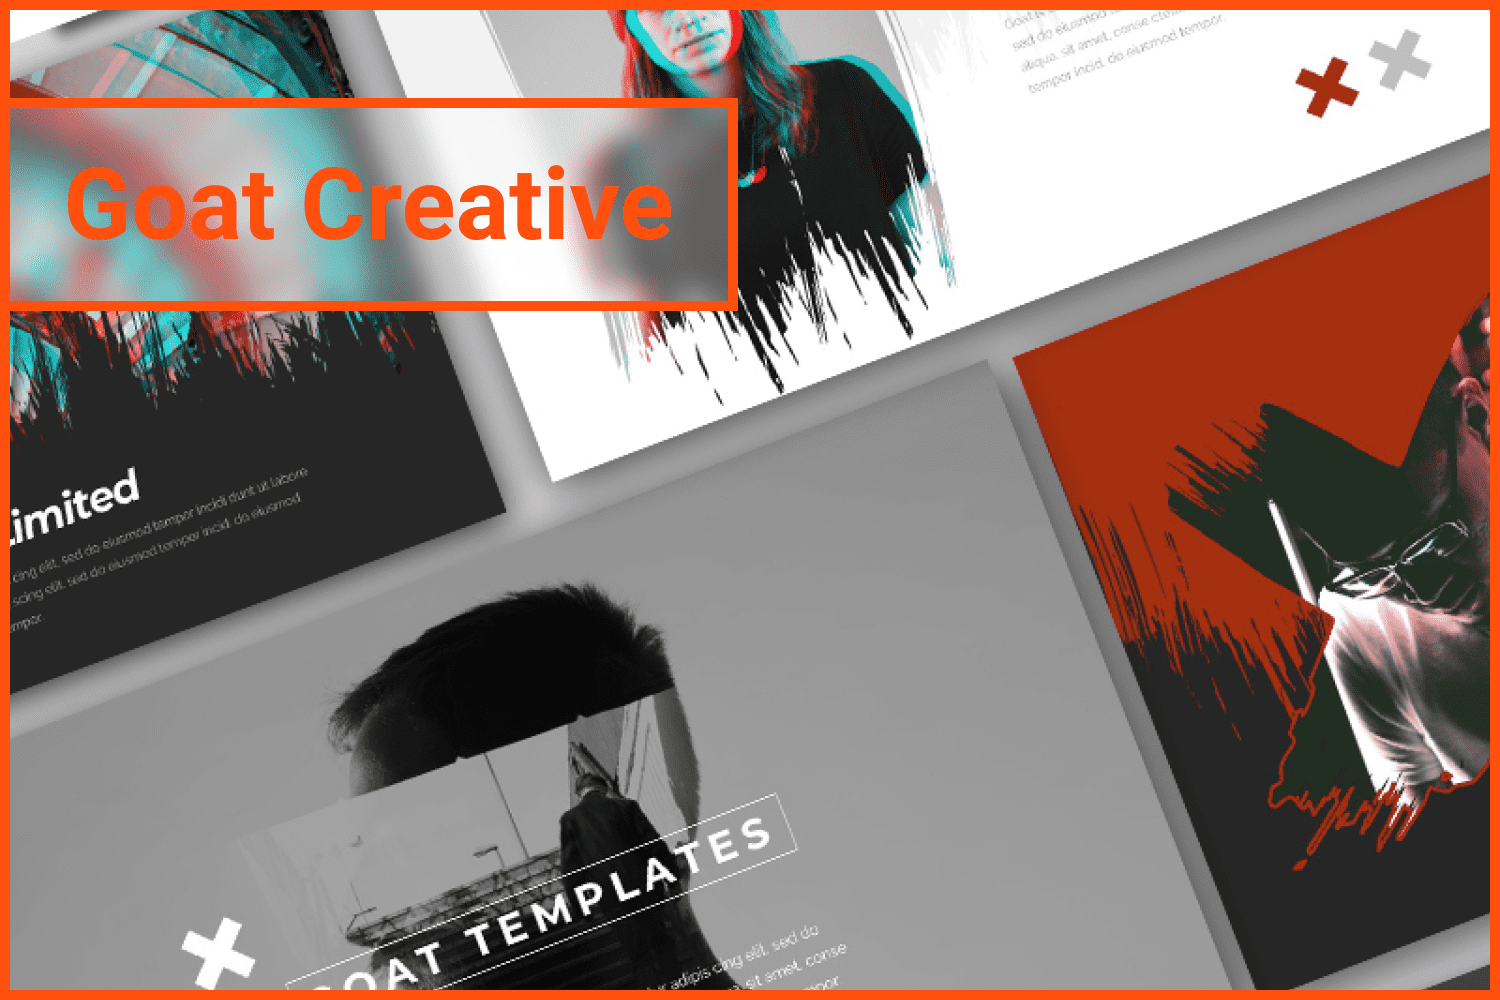 Art template as a great opportunity for self-presentation.